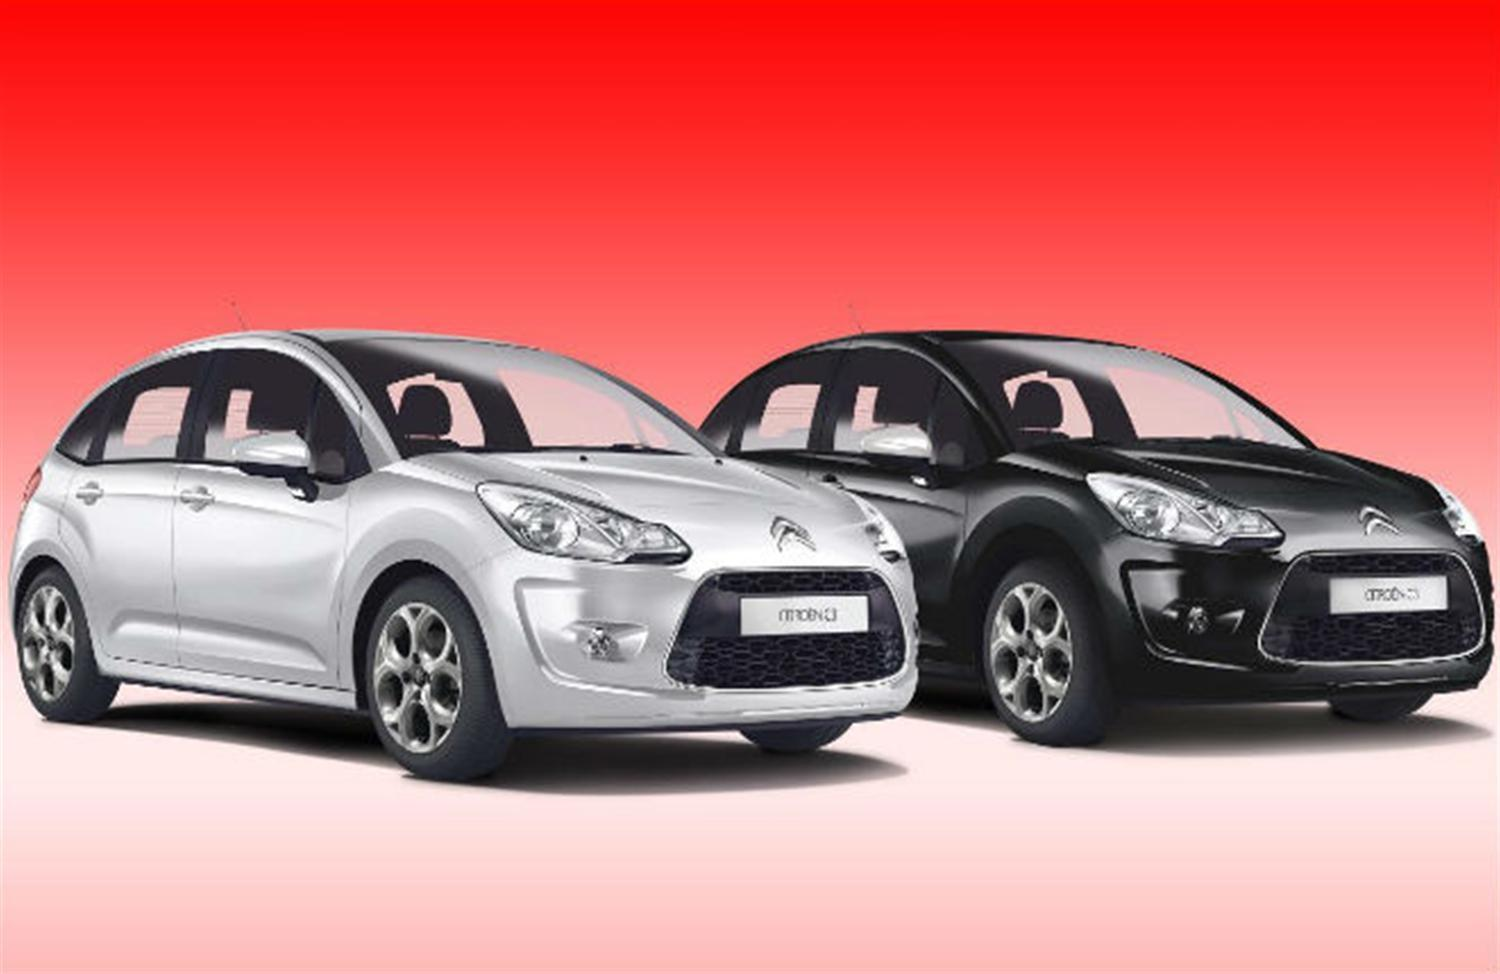 New special edition Citroen C3 launched